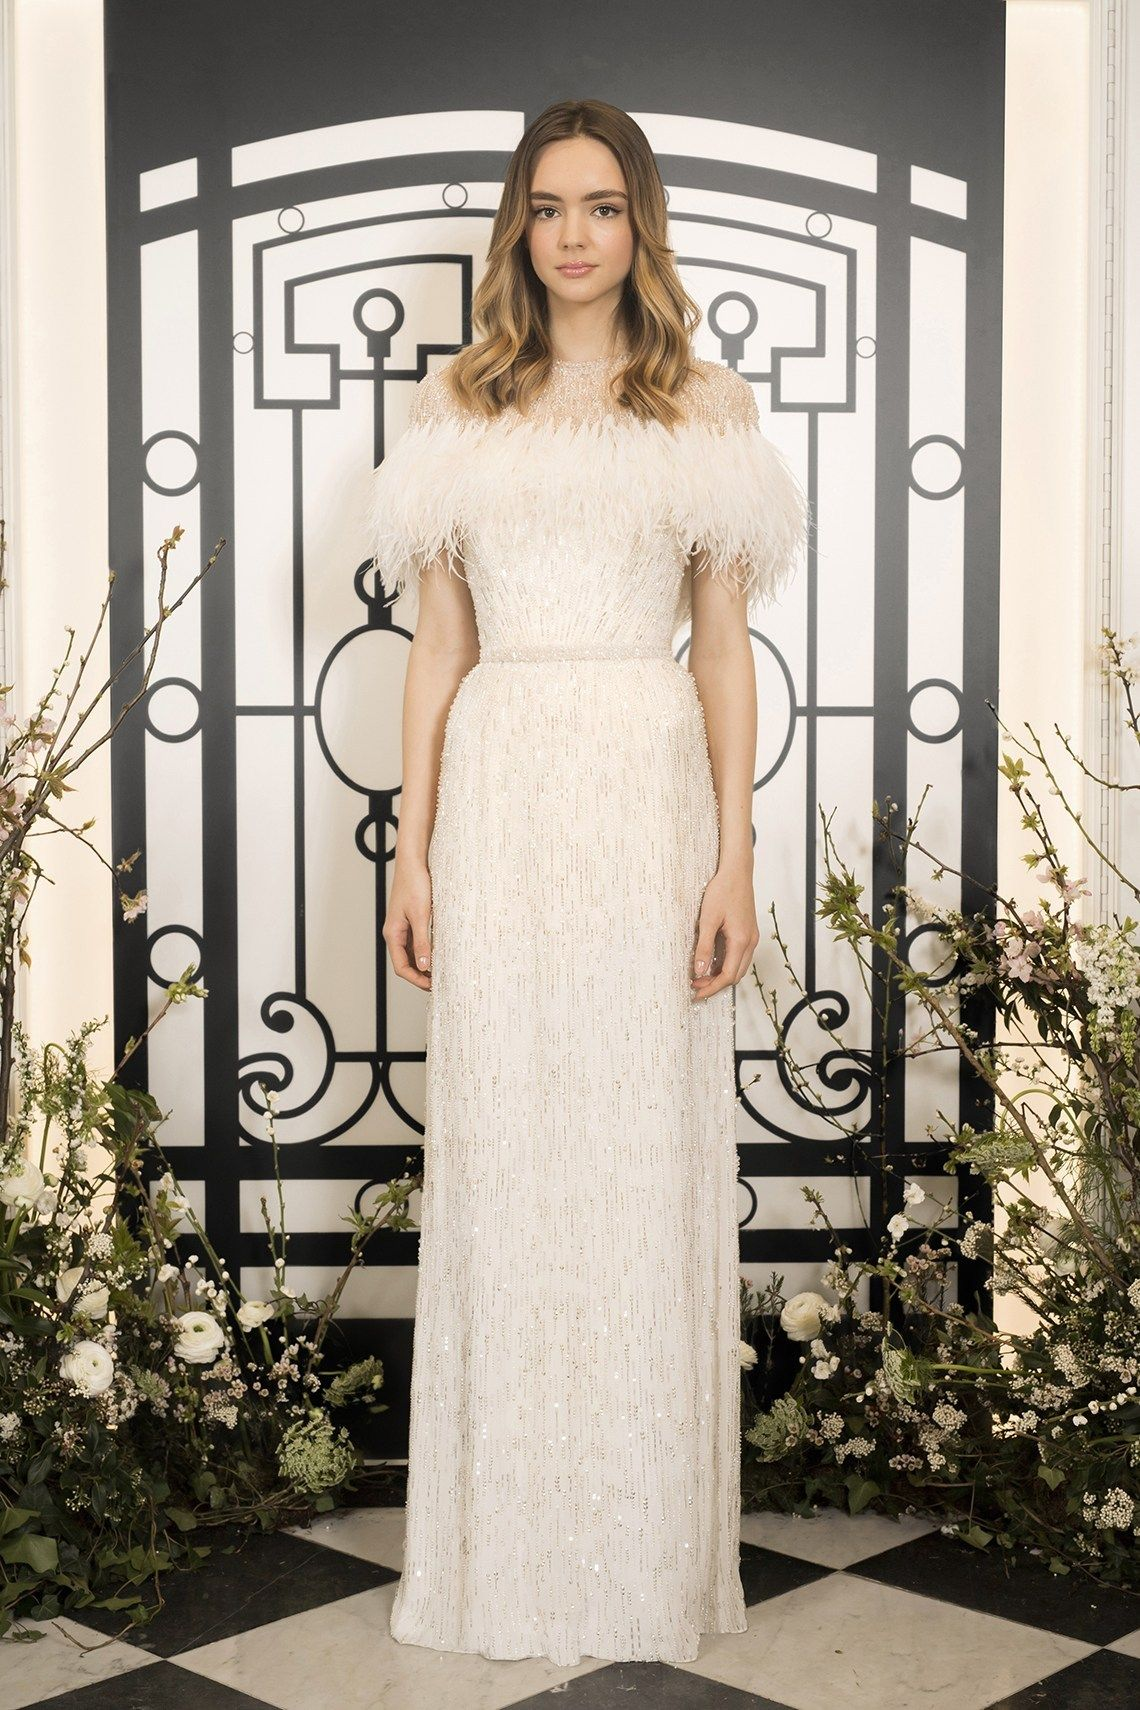 b8e8cf509373 Destination brides will love Jenny Packham's sparkling & feather  embellished new wedding dress collection